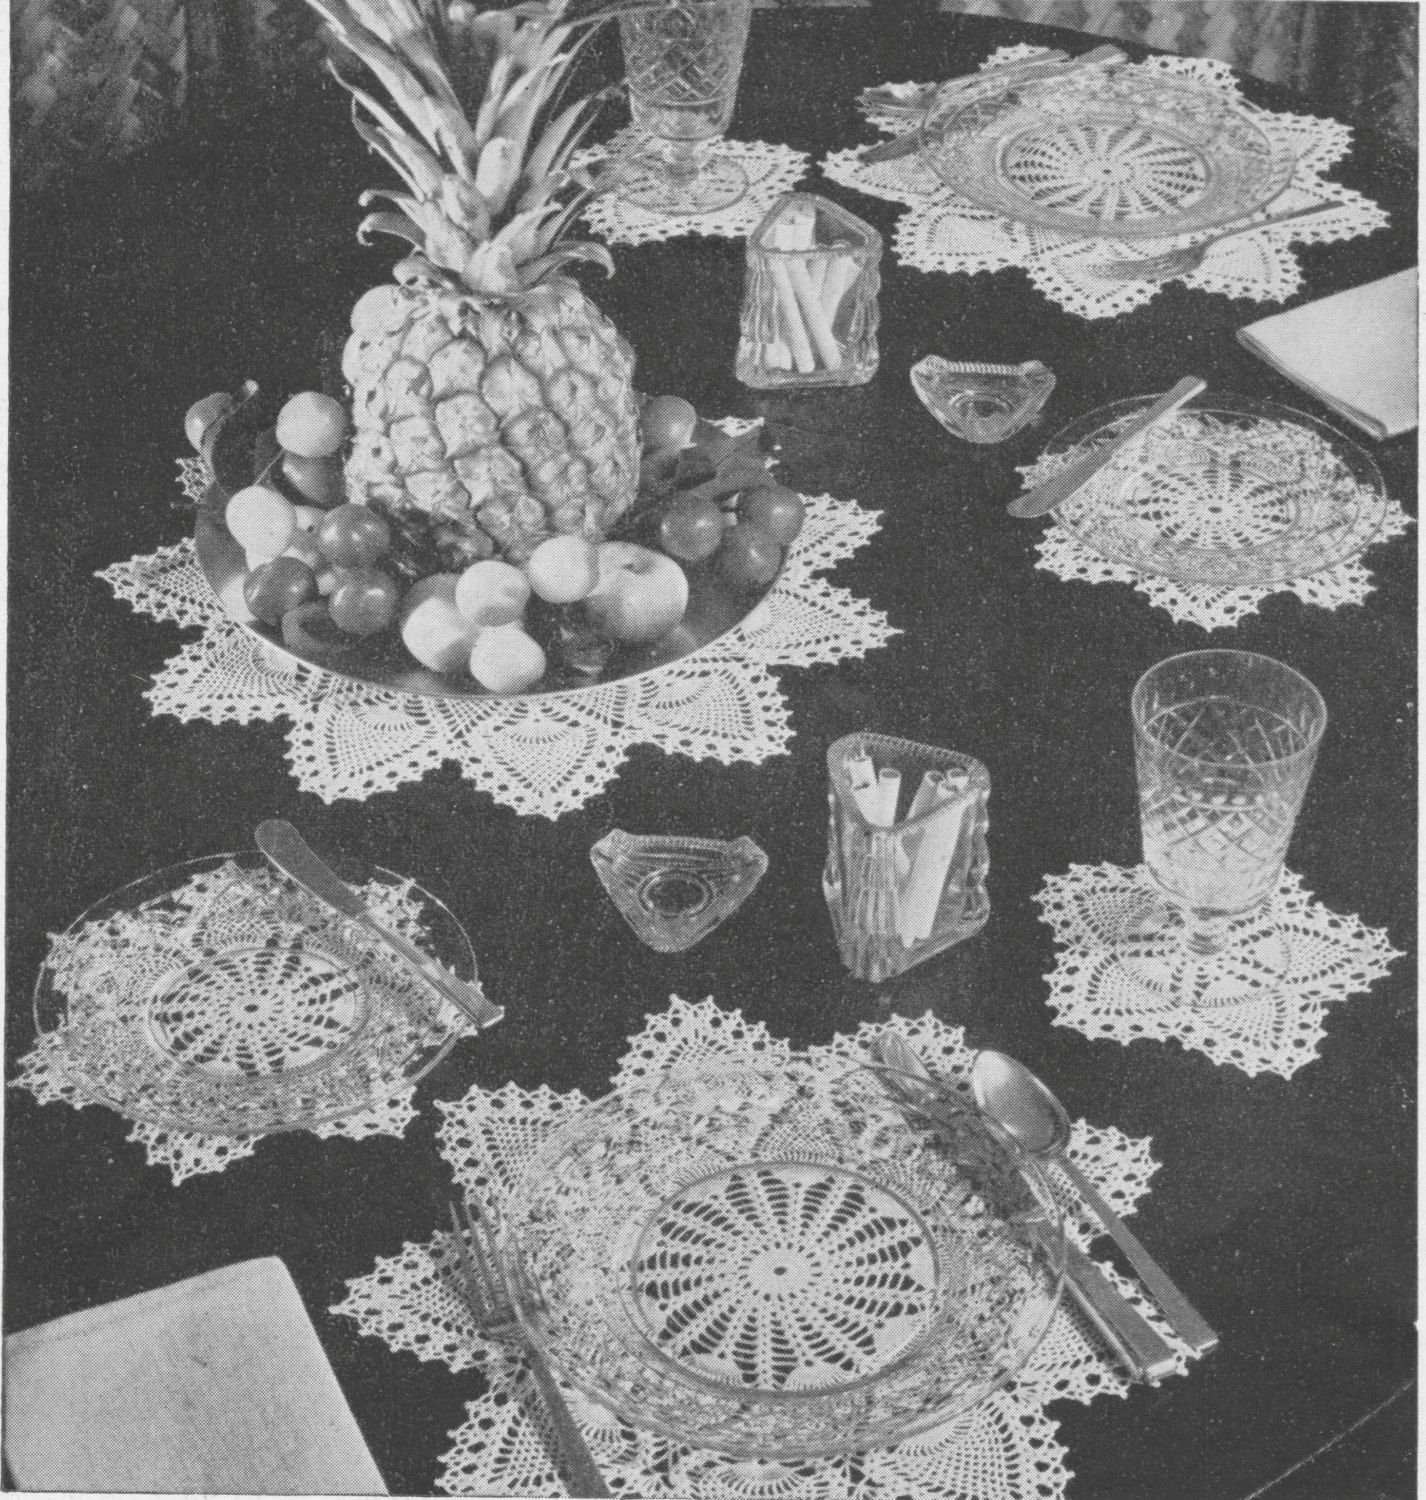 402 Vintage 1940\'s Pineapple Luncheon Set Crochet Pattern, Doily Set ...